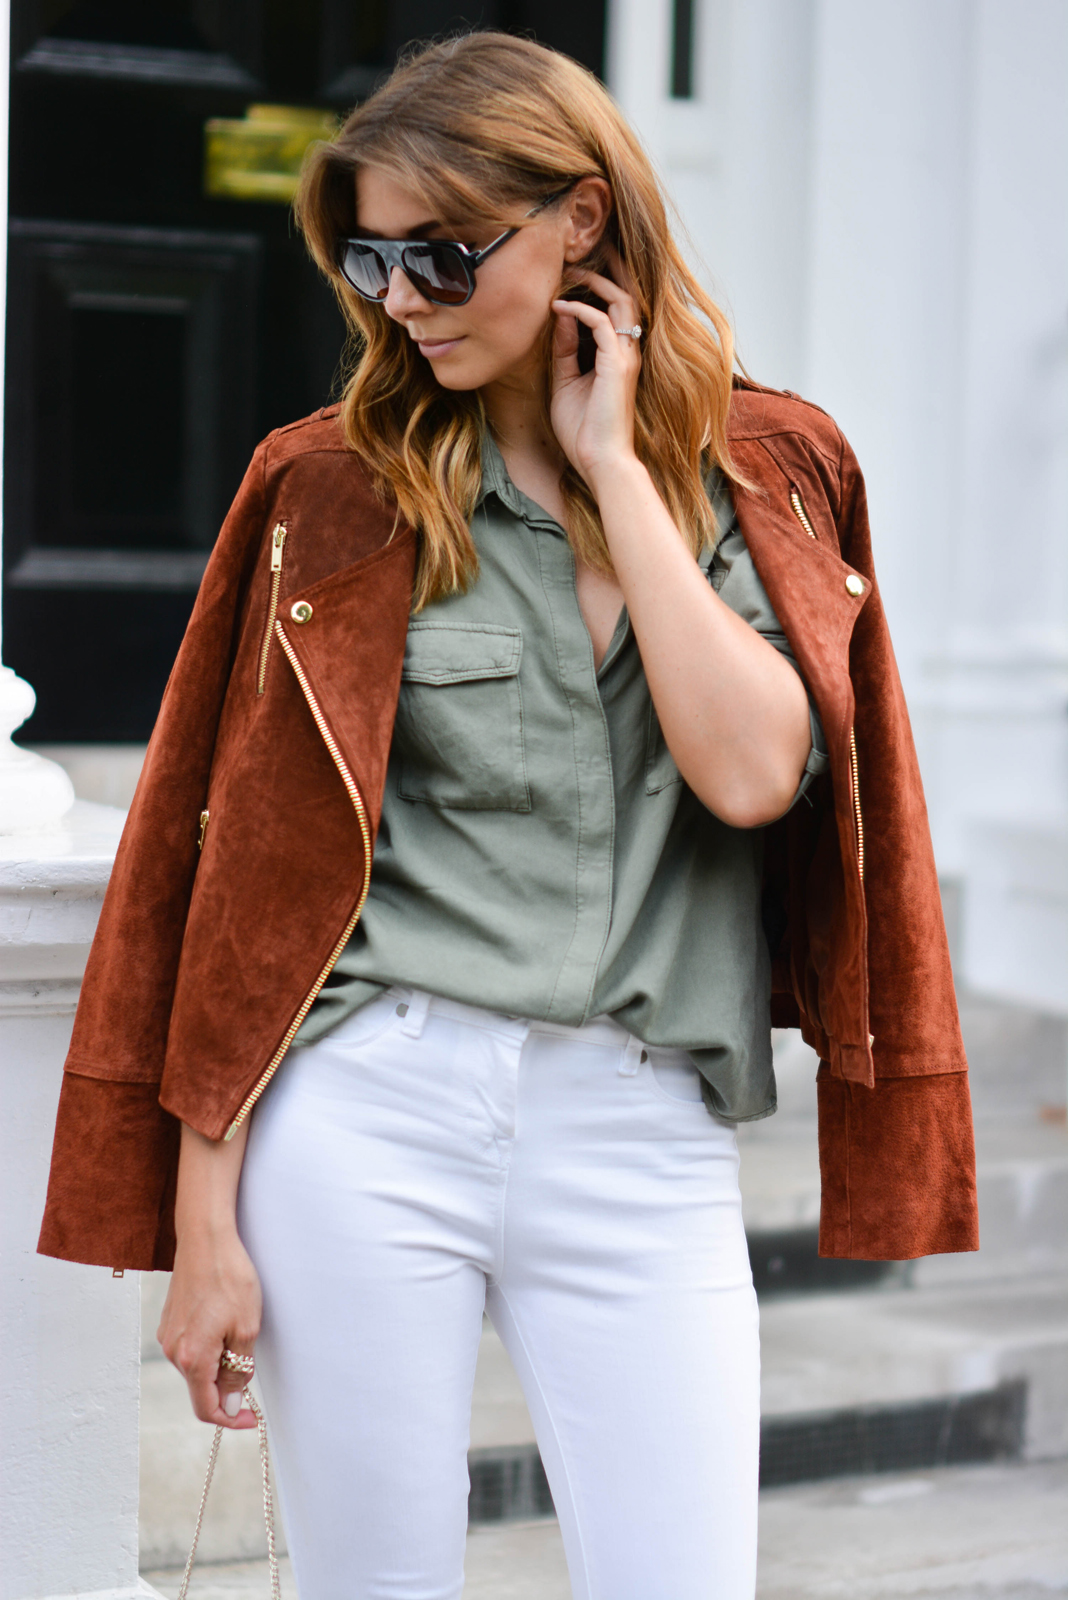 EJSTYLE - Rust suede biker jacket, Khaki shirt, white jeans, rust suede tassel fringe cross body bag, flat top square sunglasses